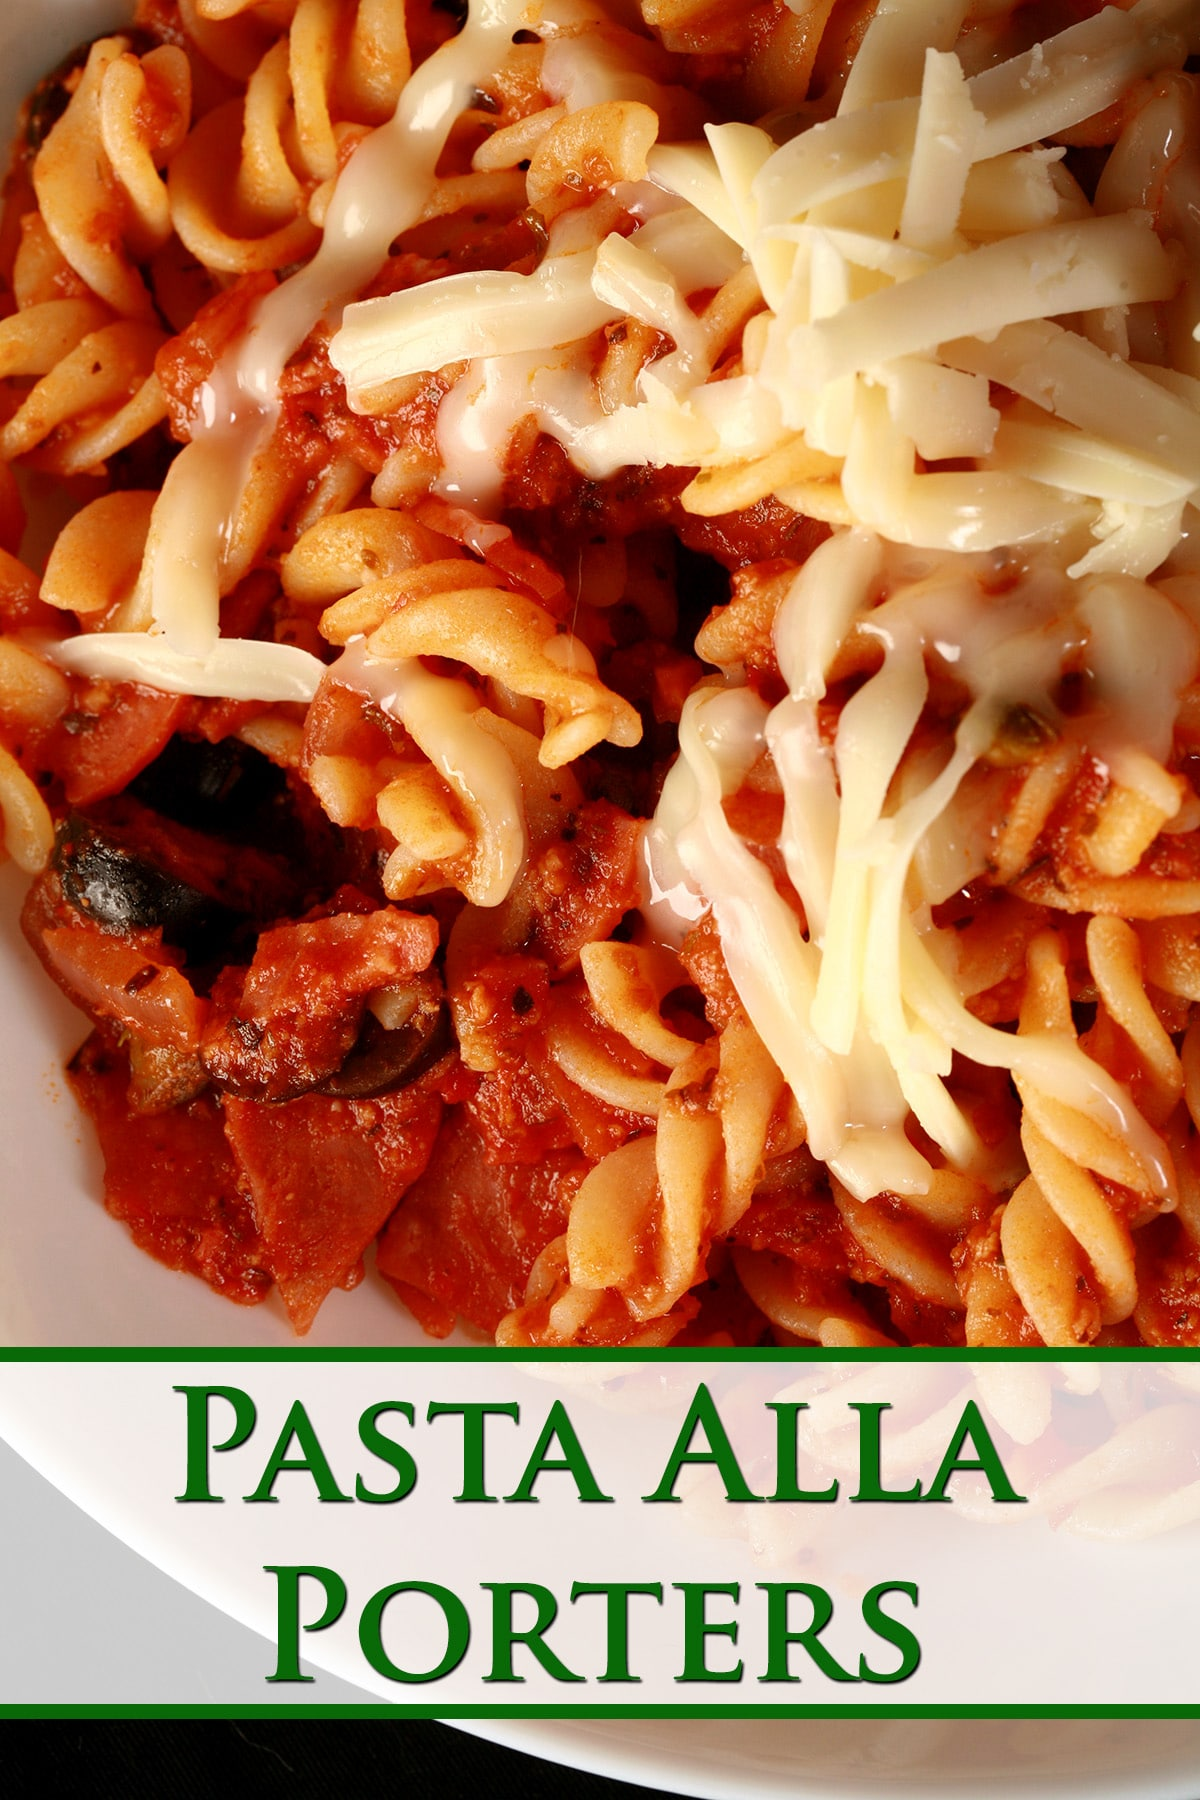 A bowl of pasta in red sauce, with bits of pepperoni and sliced black olives visible. There is shredded mozzarella on top - Pasta Alla Porters.